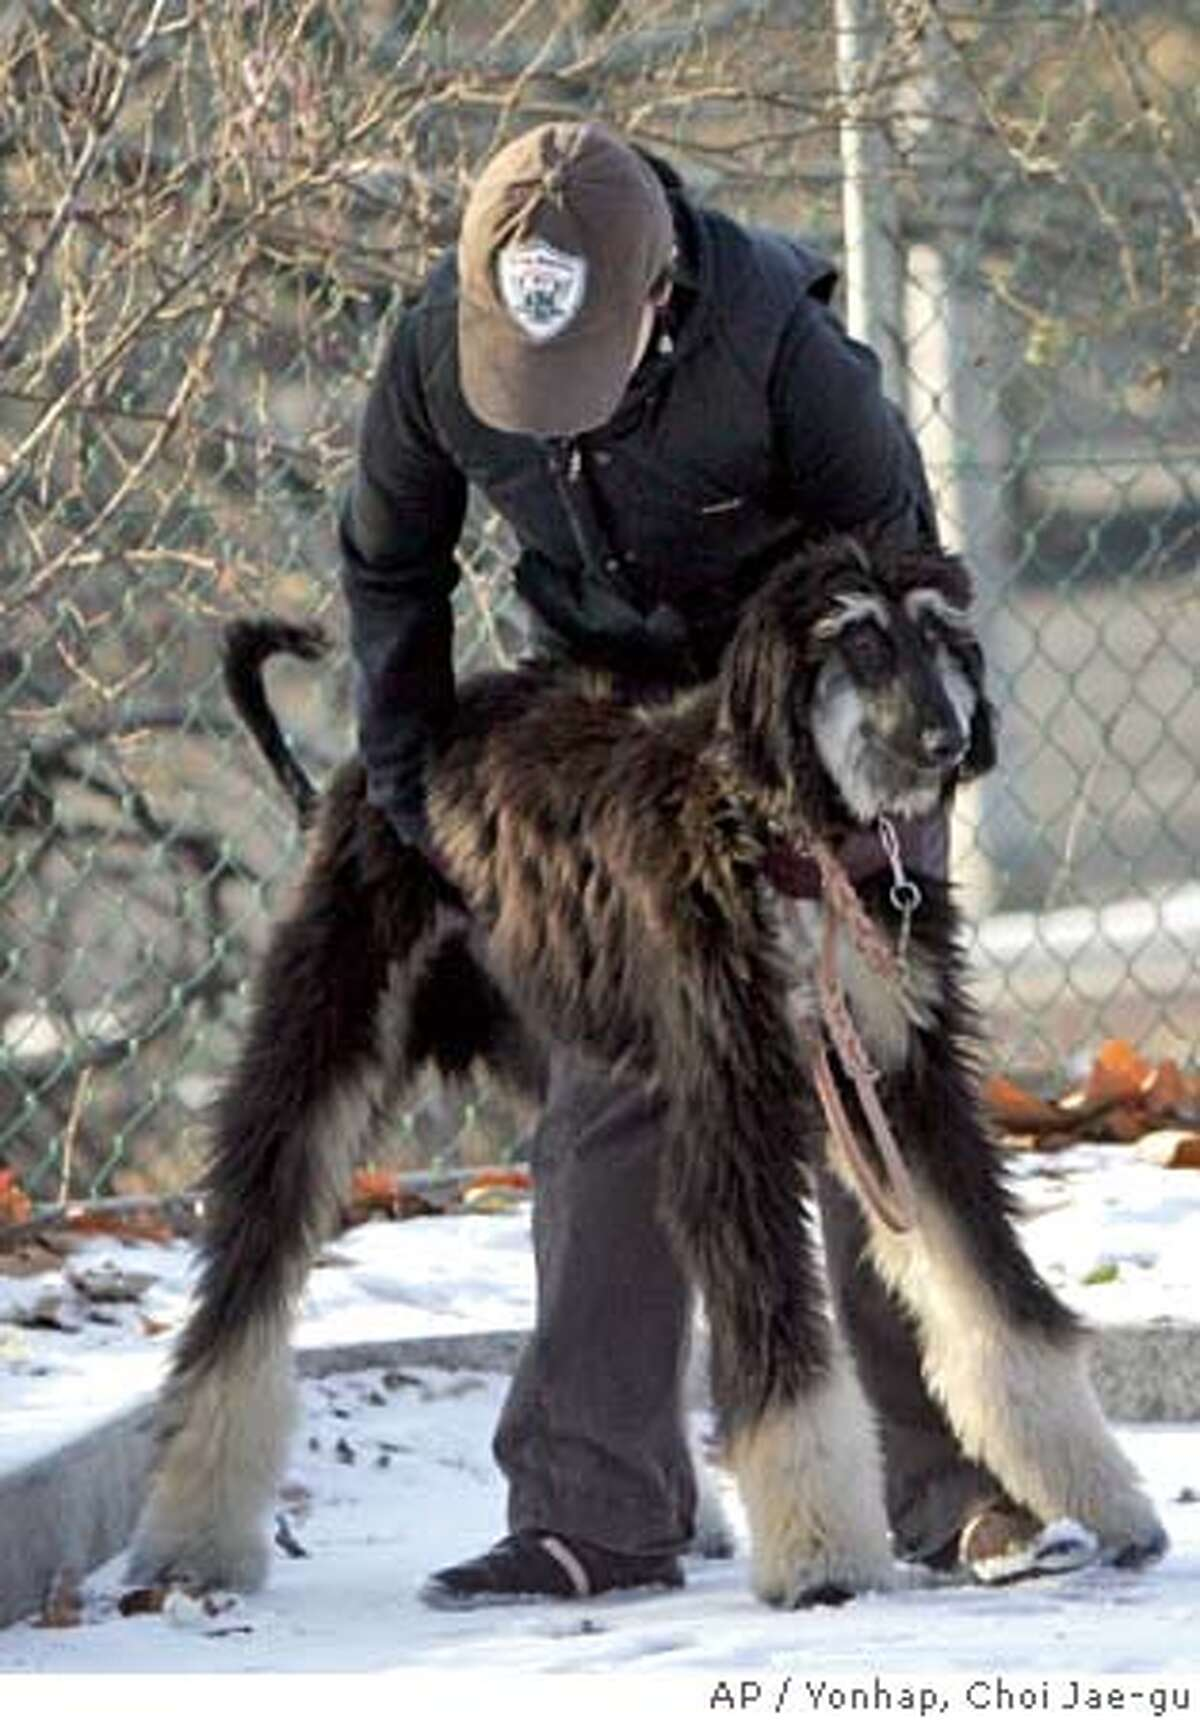 Snuppy, the first cloned dog succeeded by South Korean stem cell researcher Hwang Woo-suk, plays with an unidentified researcher on the snow at the Seoul National University in Seoul, Friday, Dec. 23, 2005. Researcher Hwang Woo-suk apologized Friday and resigned from a South Korean university after the school announced that he fabricated results in stem-cell research that had raised hopes of new cures for hard-to-treat diseases. (AP Photo/Yonhap, Choi Jae-gu) ** KOREA OUT ** Ran on: 12-24-2005 Snuppy, claimed by stem cell researcher Hwang Woo Suk to be the first cloned dog, plays outside Seoul National University.